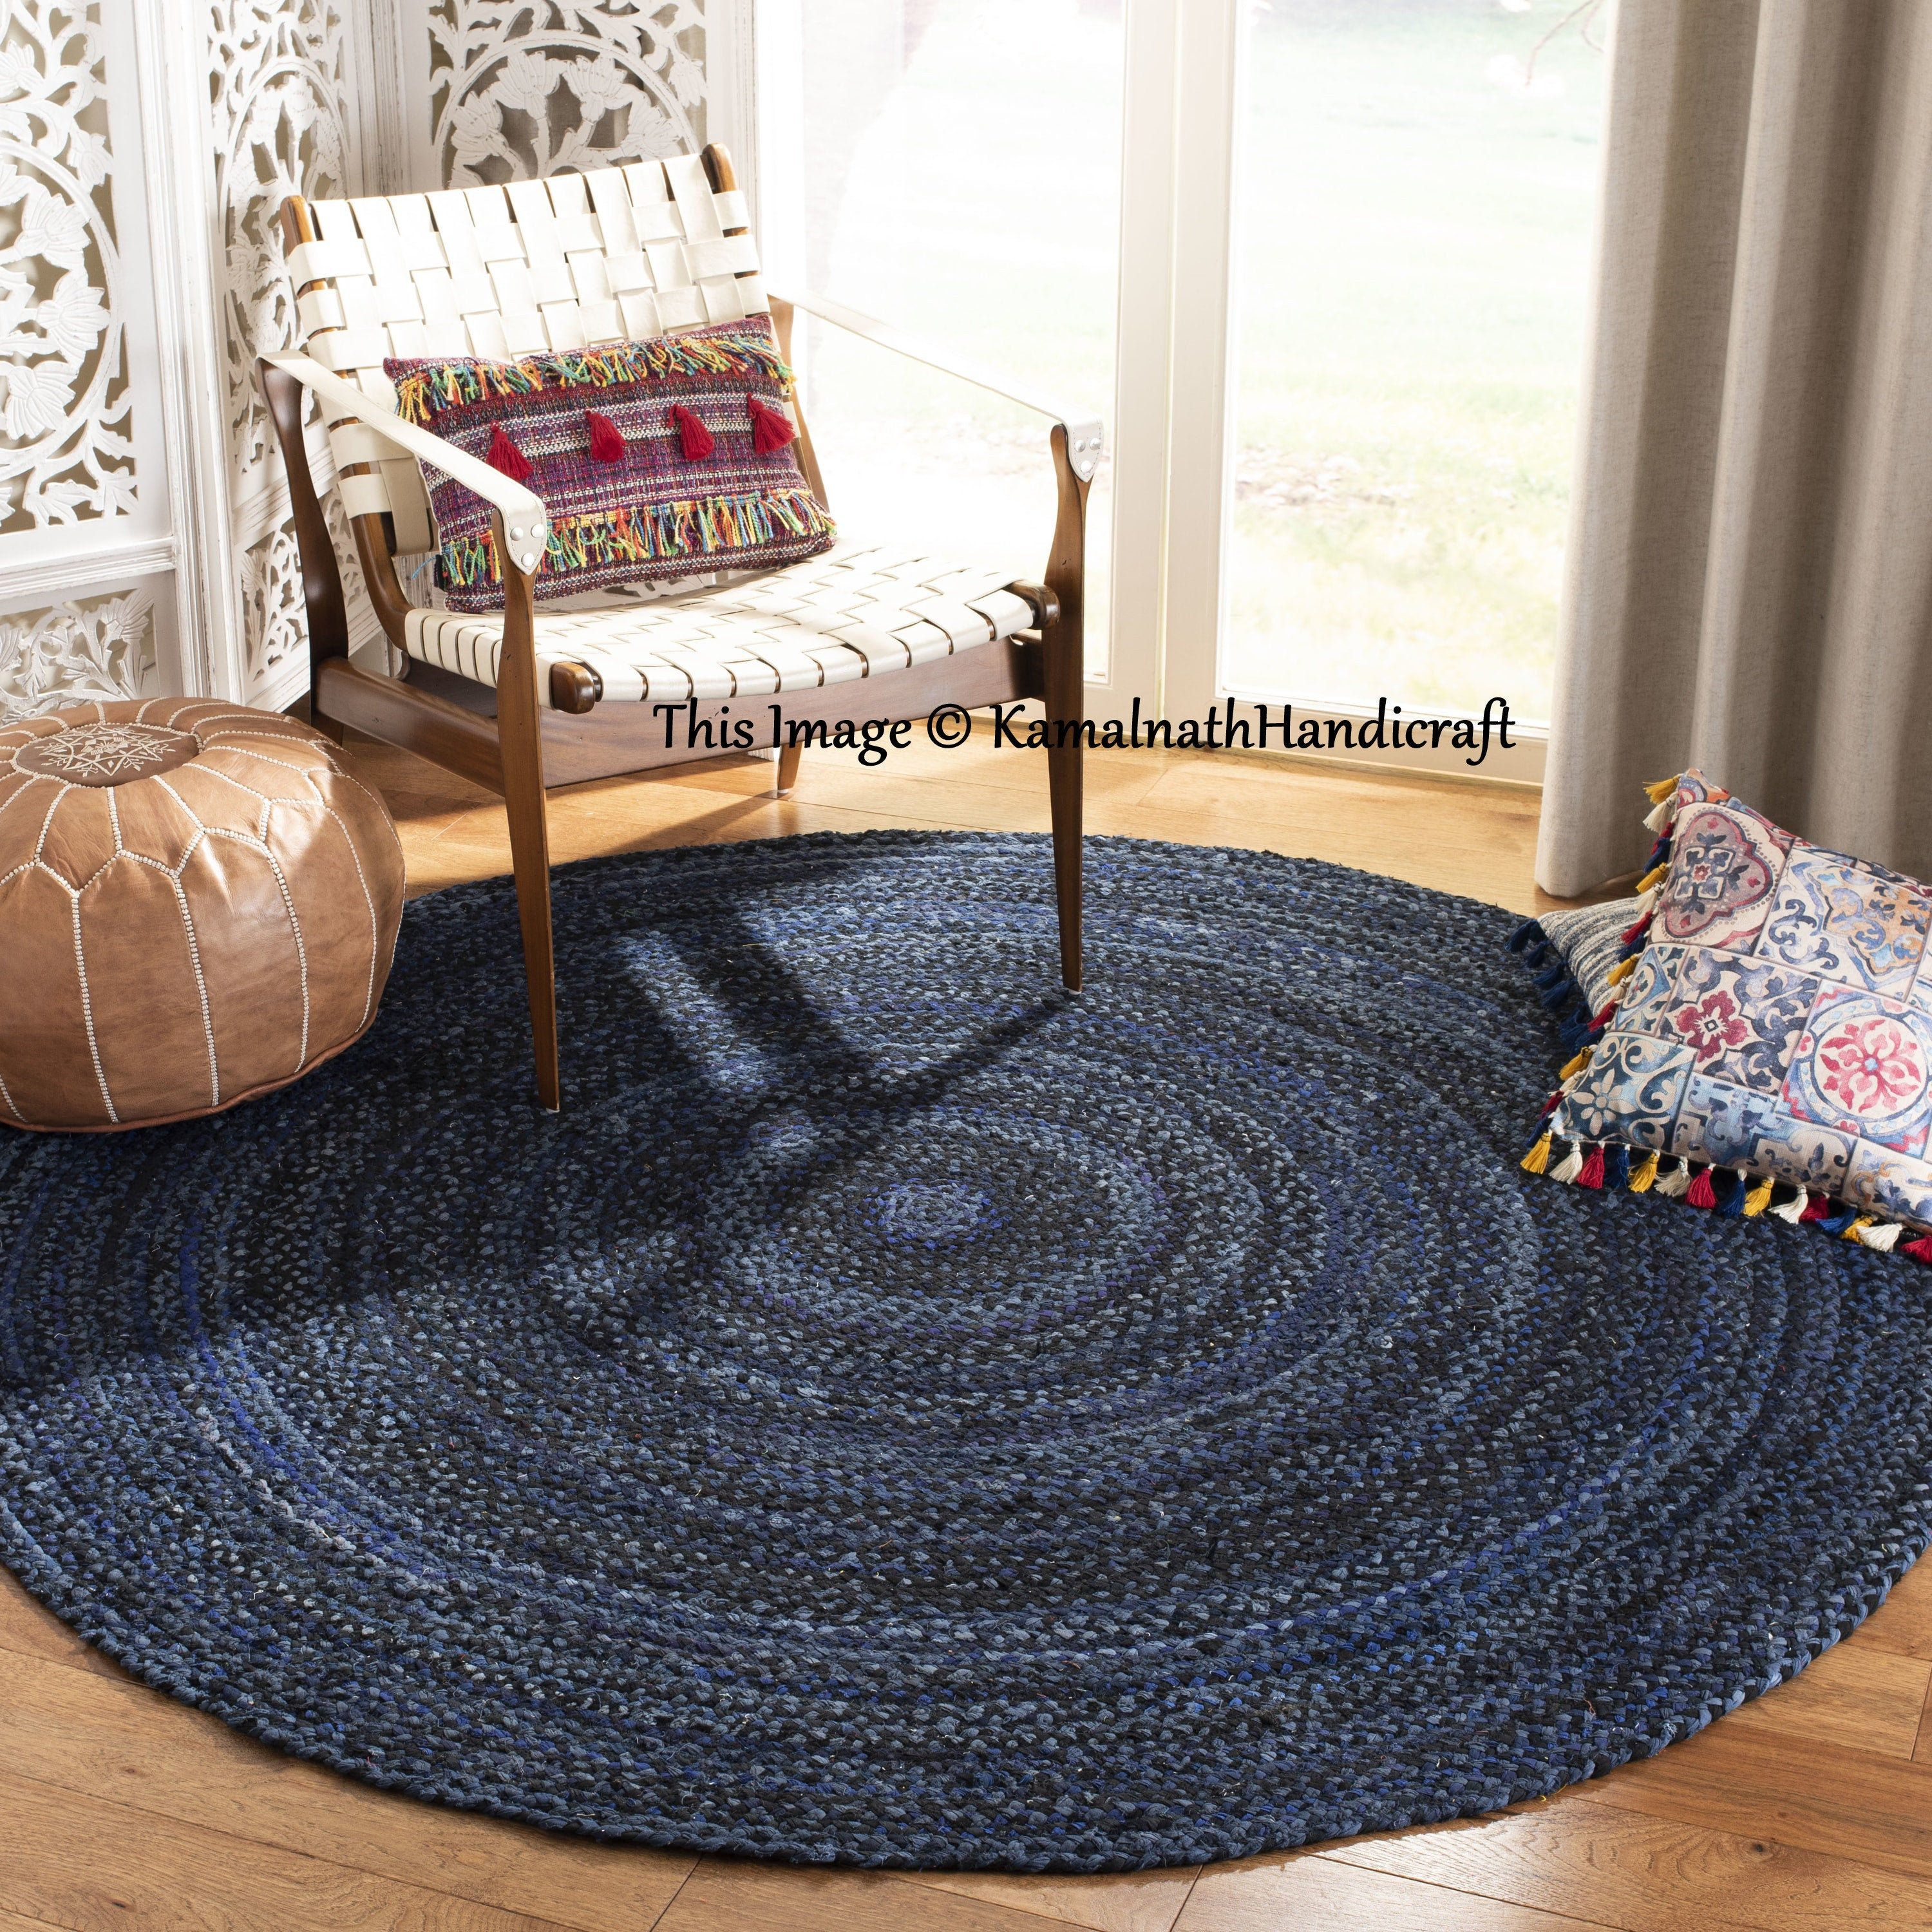 Indian Handmade Hand Braided Bohemian Cotton And Jute Area Rug Etsy In 2020 Round Braided Rug Rugs On Carpet Rugs Size